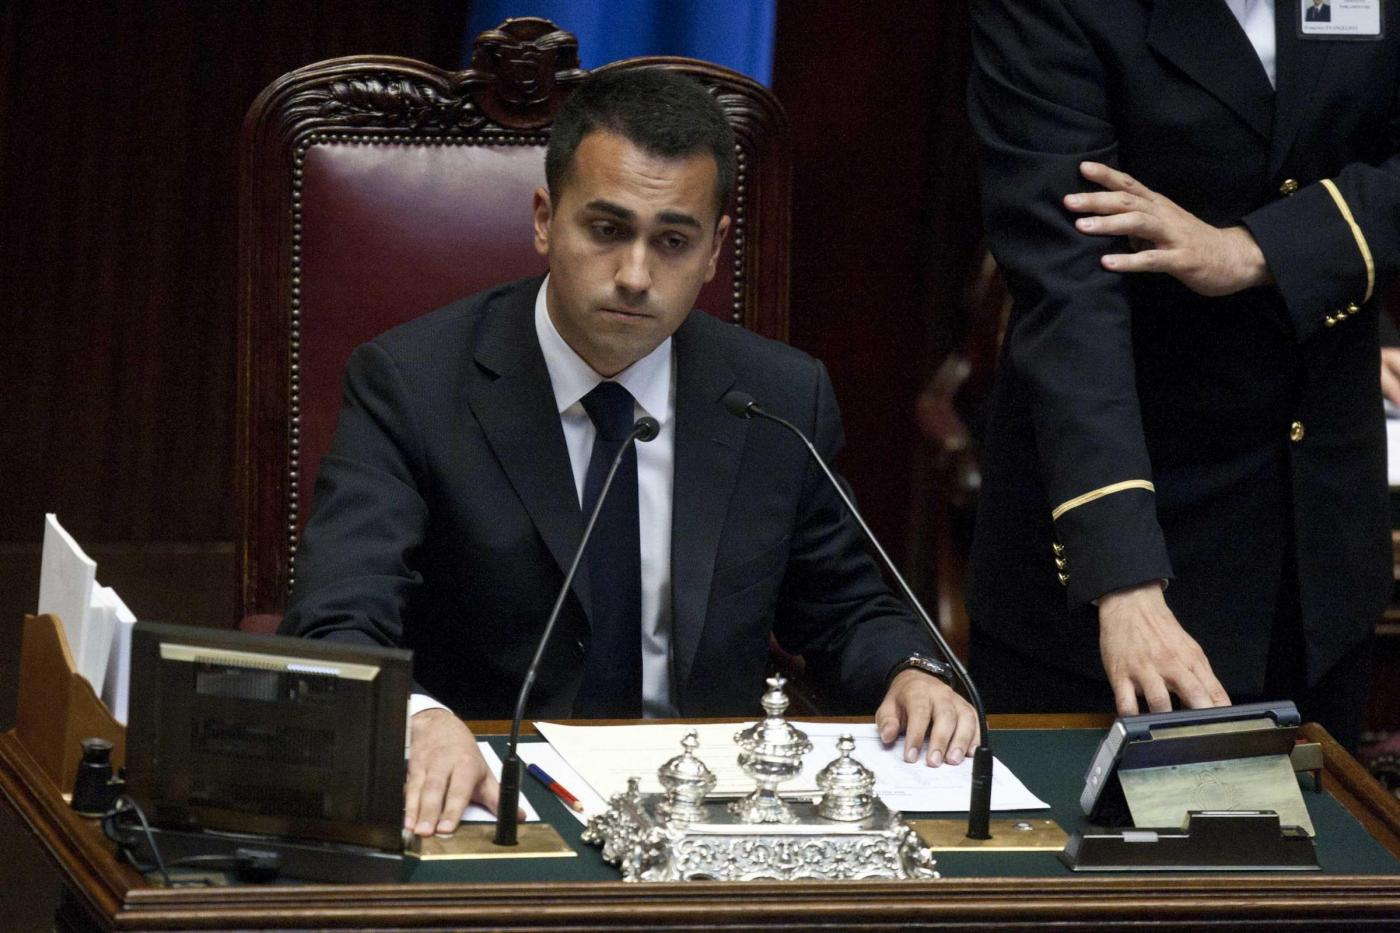 Foto Mauro Scrobogna /LaPresse 29-04-2013 Roma Politica Camera - Fiducia Governo Letta  Nella foto: Luigi Di Maio m5s Photo Mauro Scrobogna /LaPresse 29-04-2013 Roma Politics Chamber of Deputies - vote of confidence Letta Government In the picture: Luigi Di Maio m5s